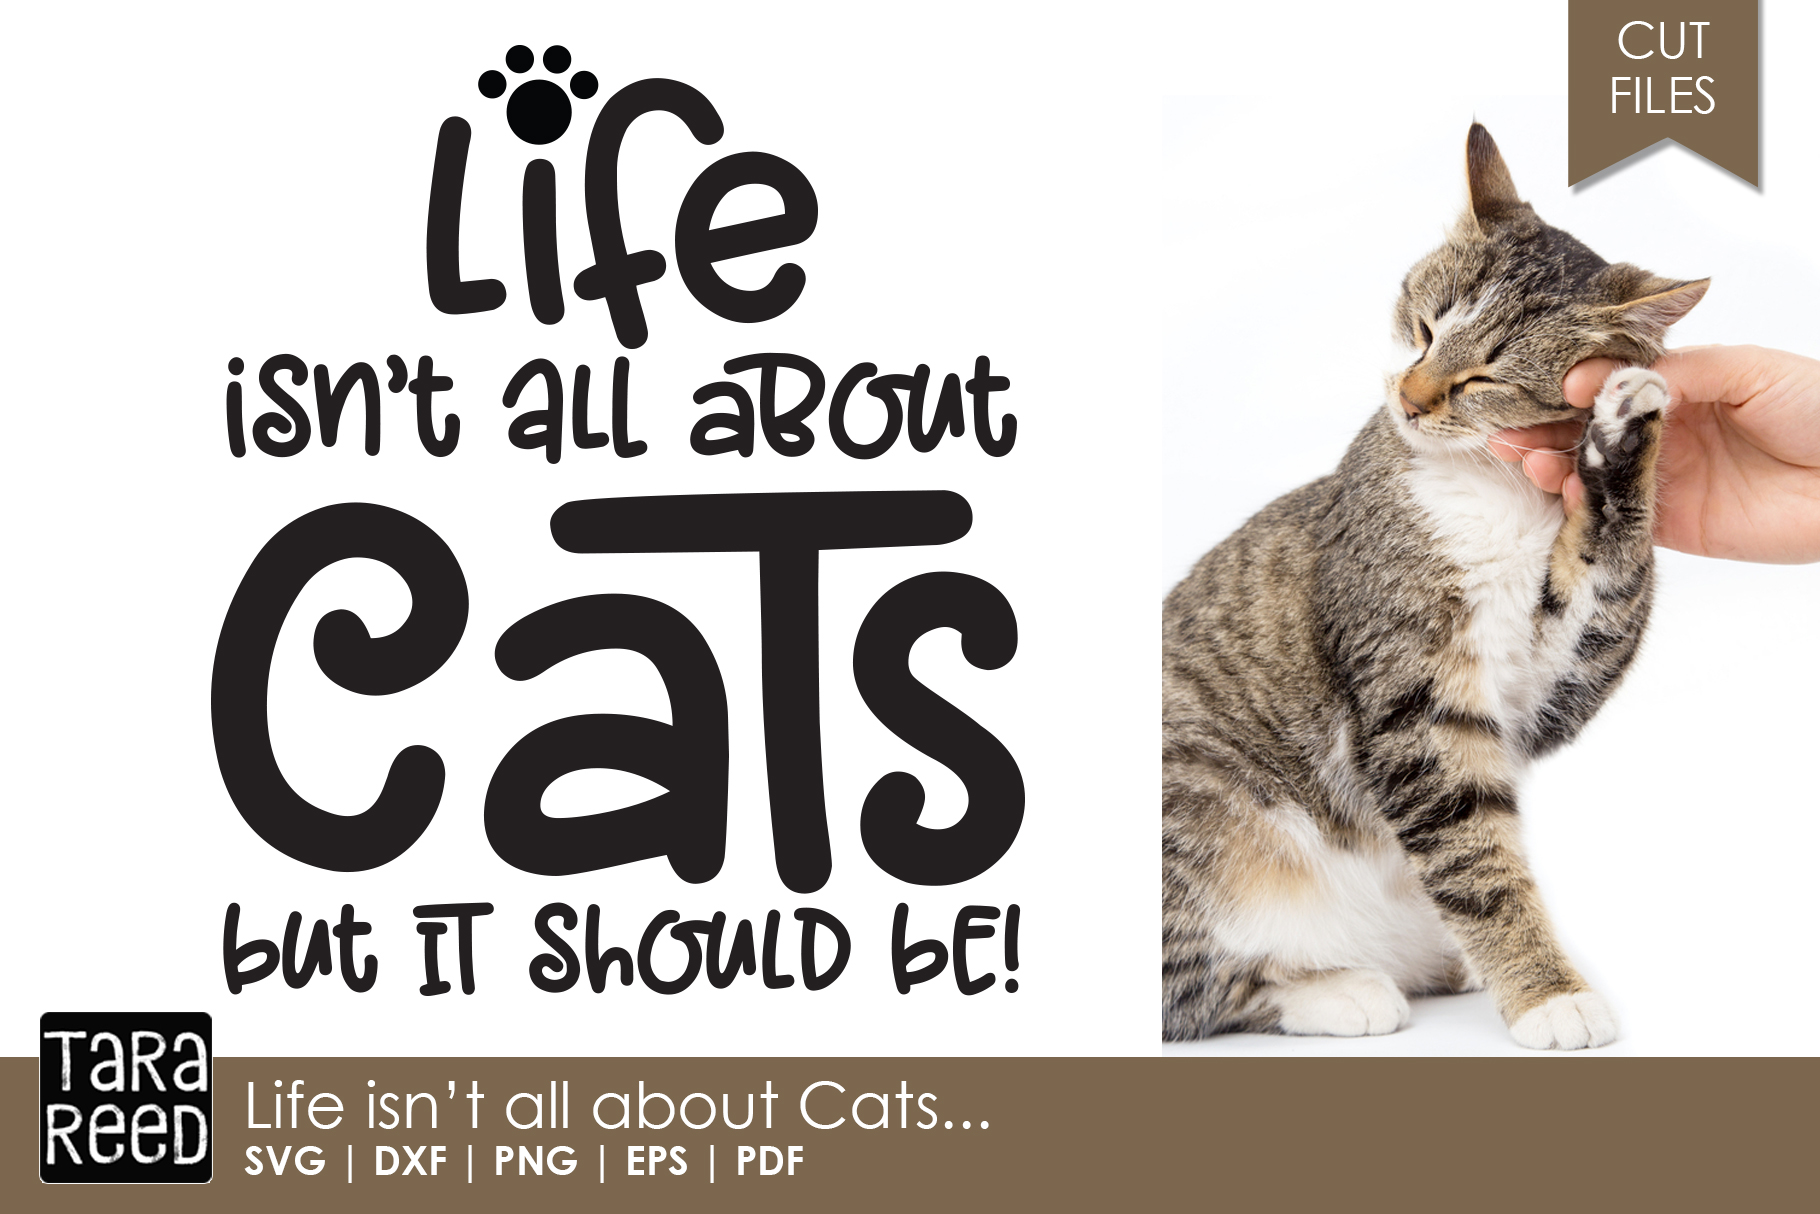 Life isn't all about Cats - Cat SVG and Cut Files example image 1